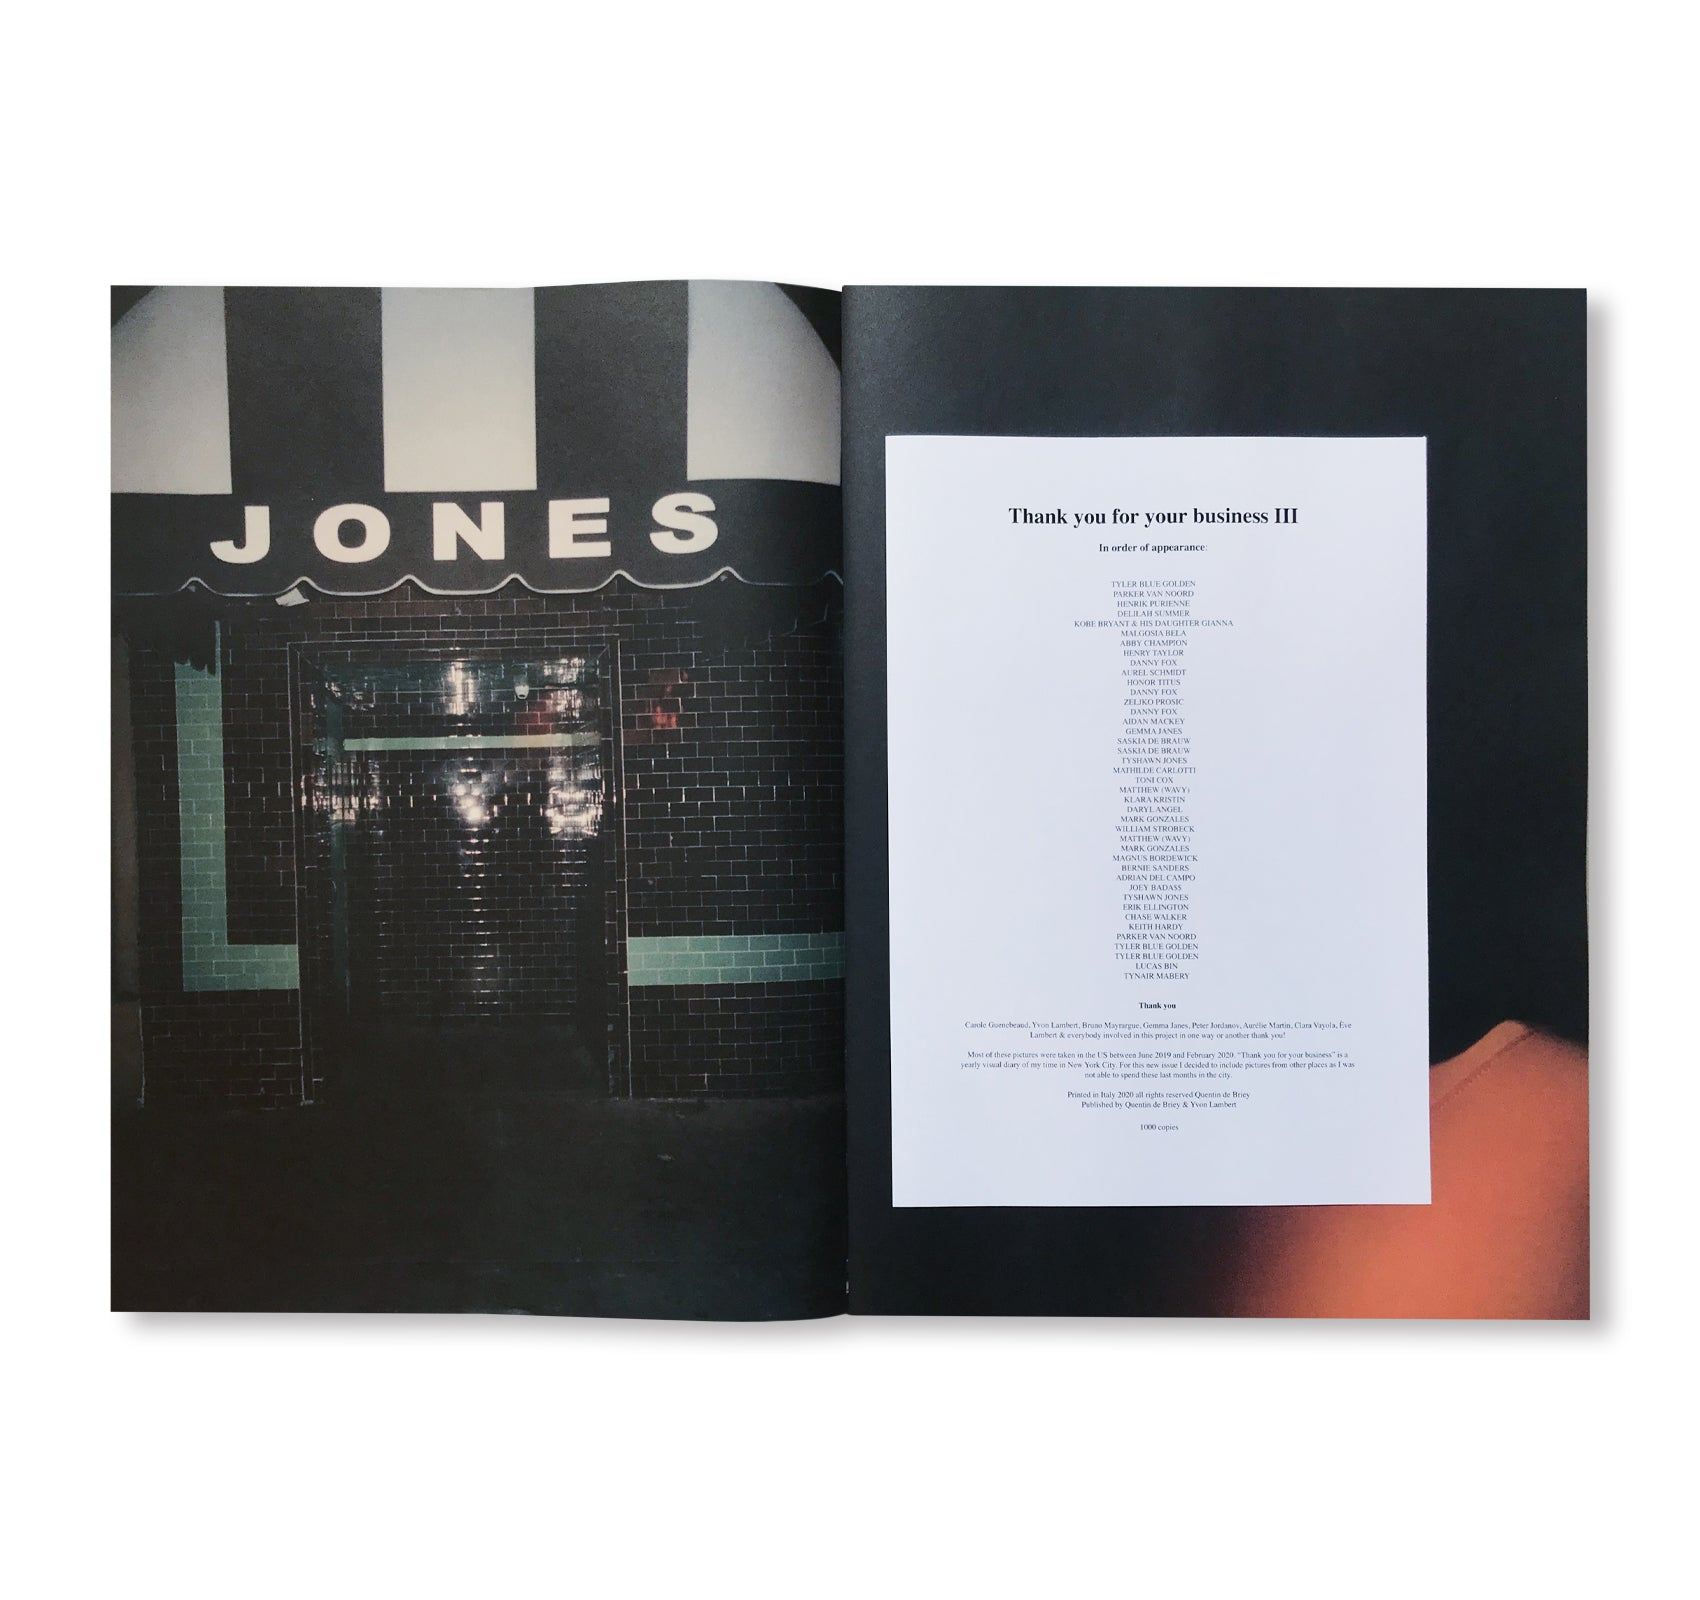 THANK YOU FOR YOUR BUSINESS Ⅲ by Quentin de Briey